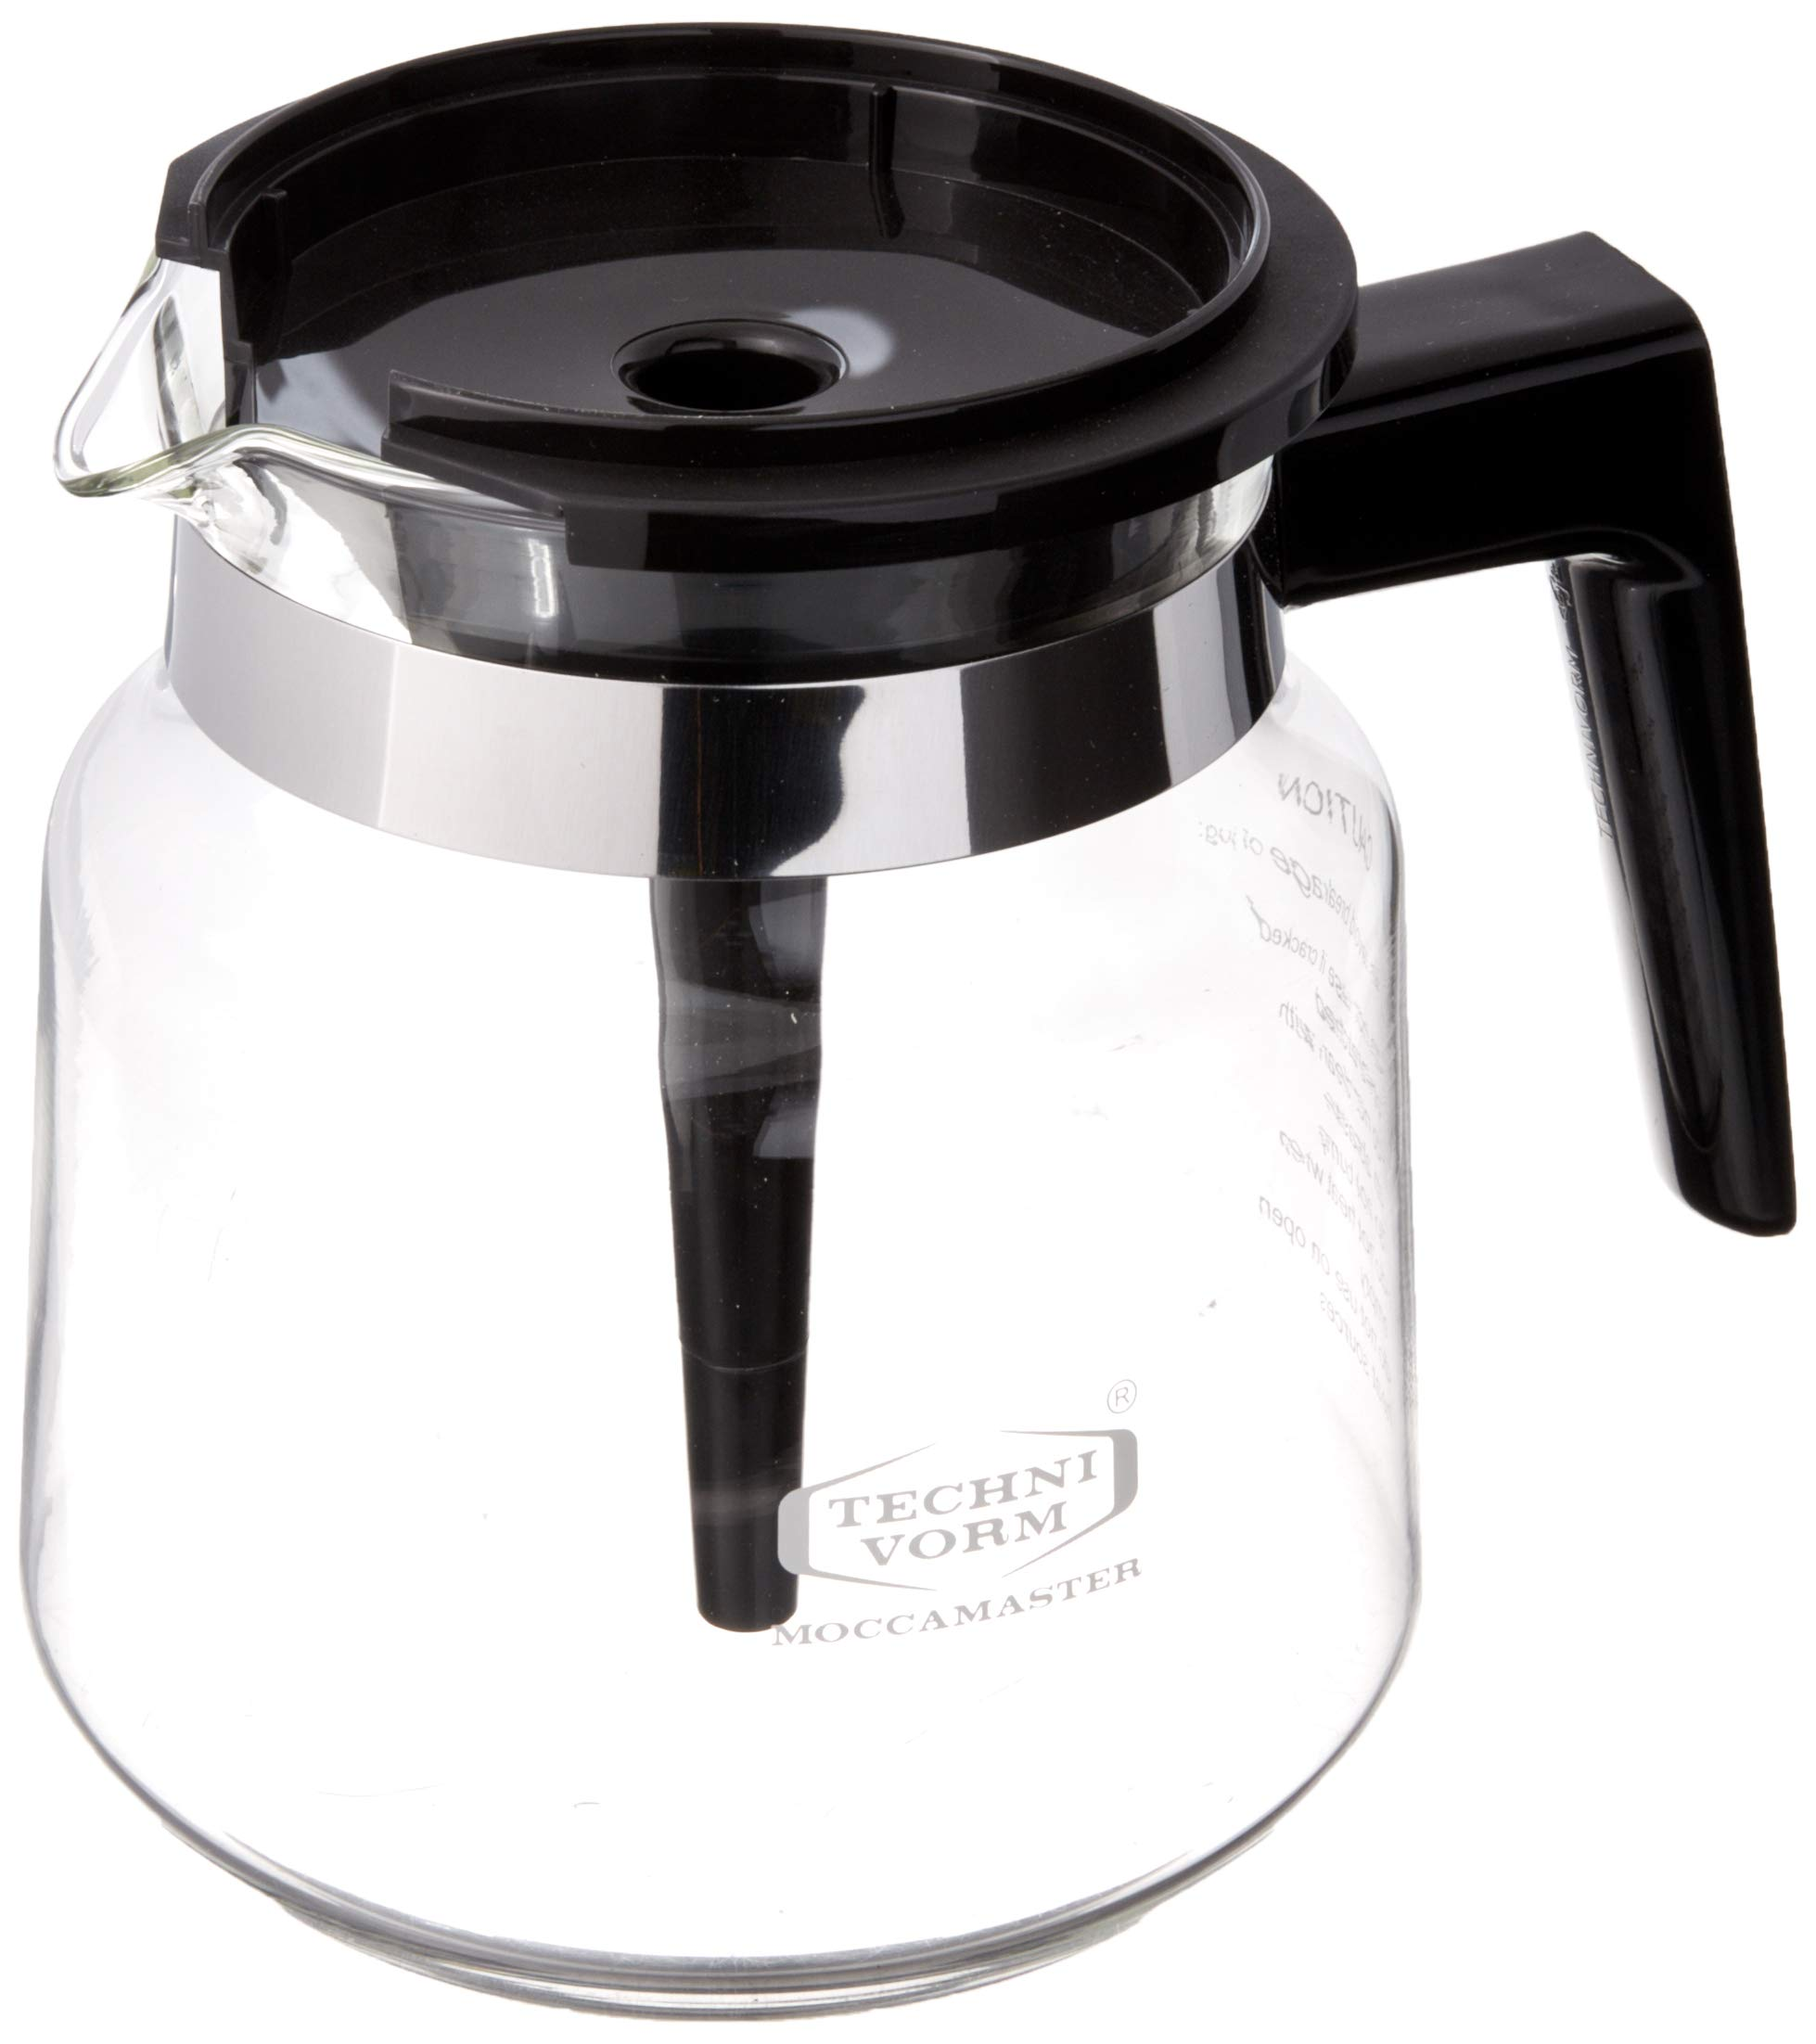 Technivorm Moccamaster 59835 1.25L Glass Carafe, for for KB, Brewers by Technivorm Moccamaster